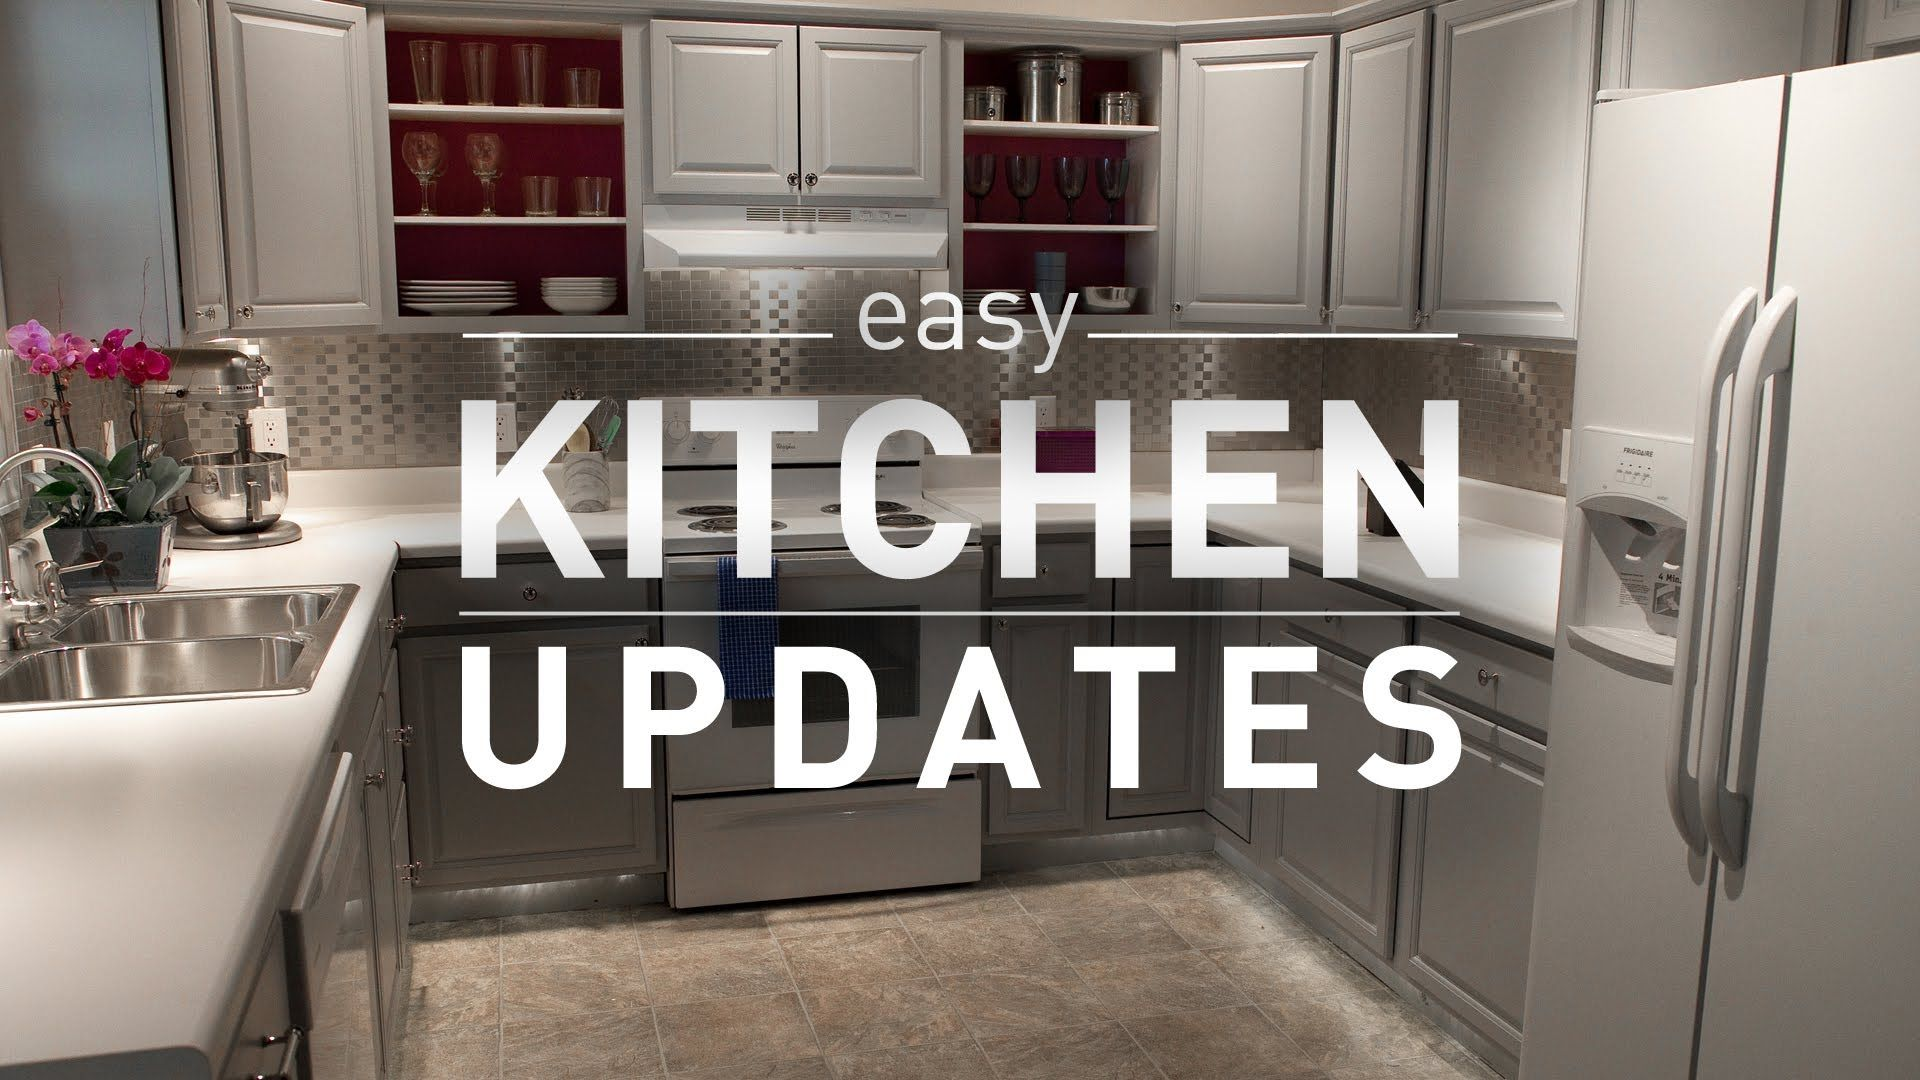 Kitchen Remodel On A Budget budget-friendly kitchen makeover from lowe's | home improvements